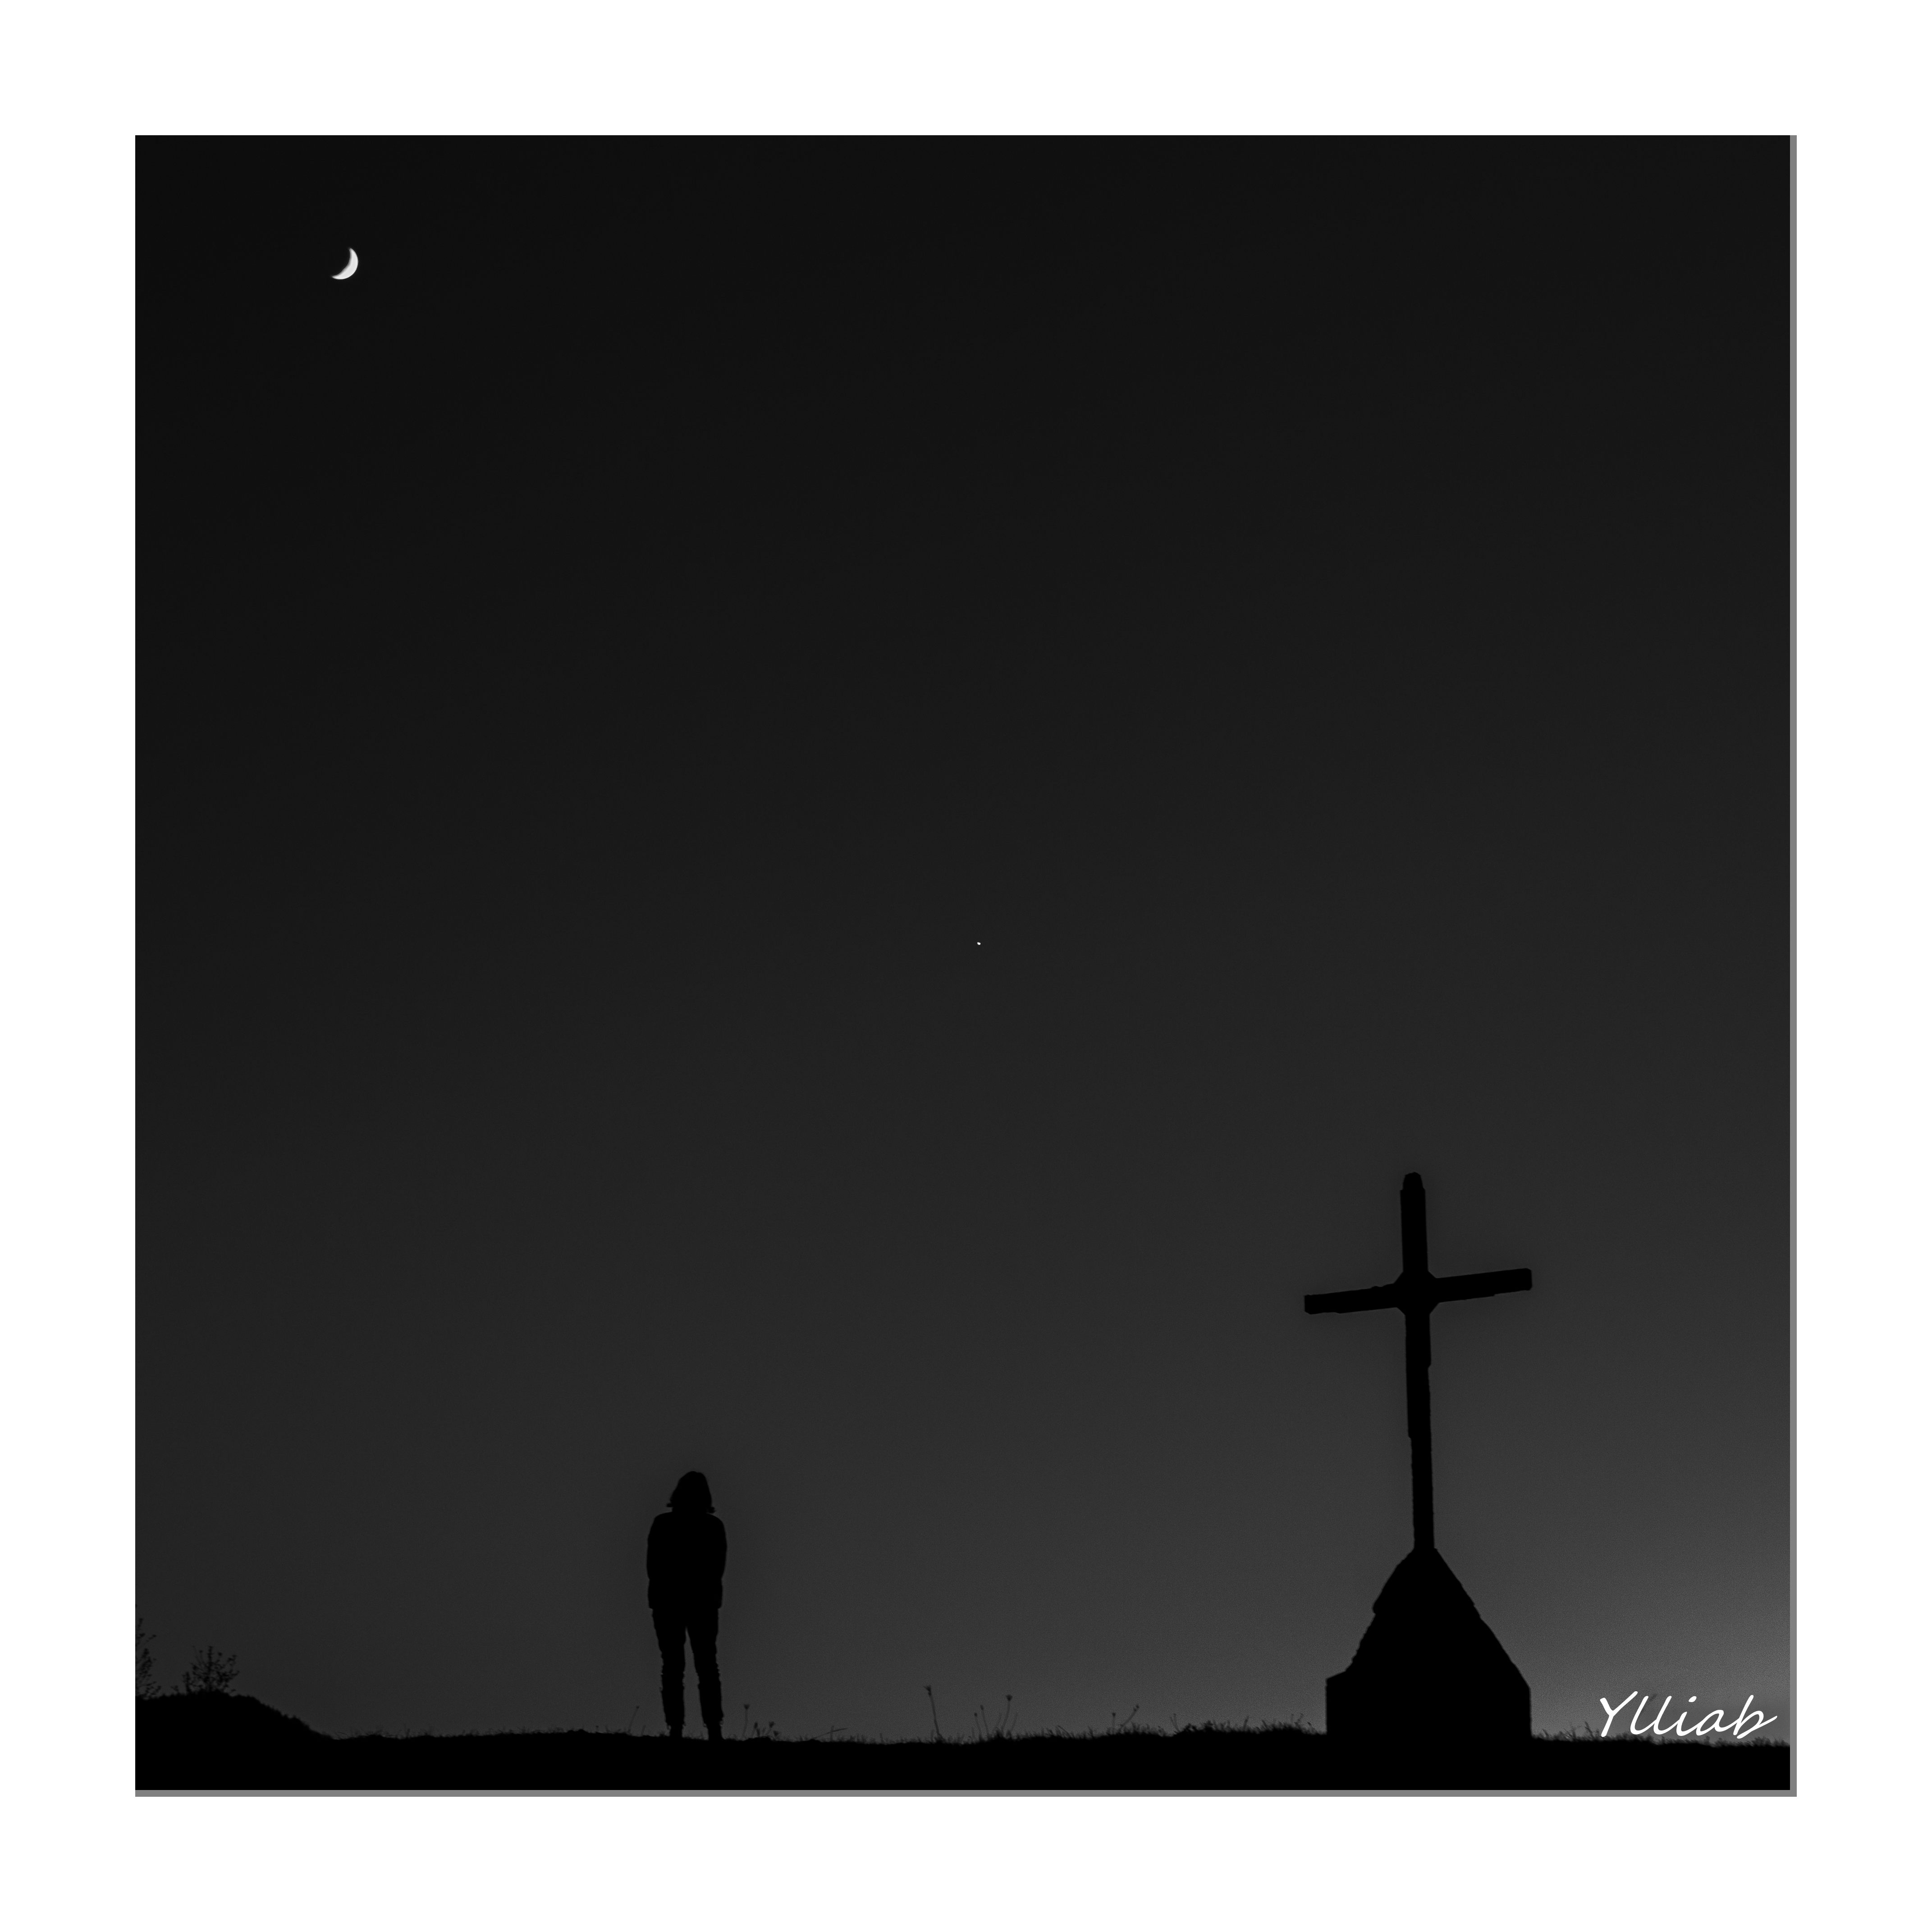 4286x4286 Free Images landscape, silhouette, black and white, france